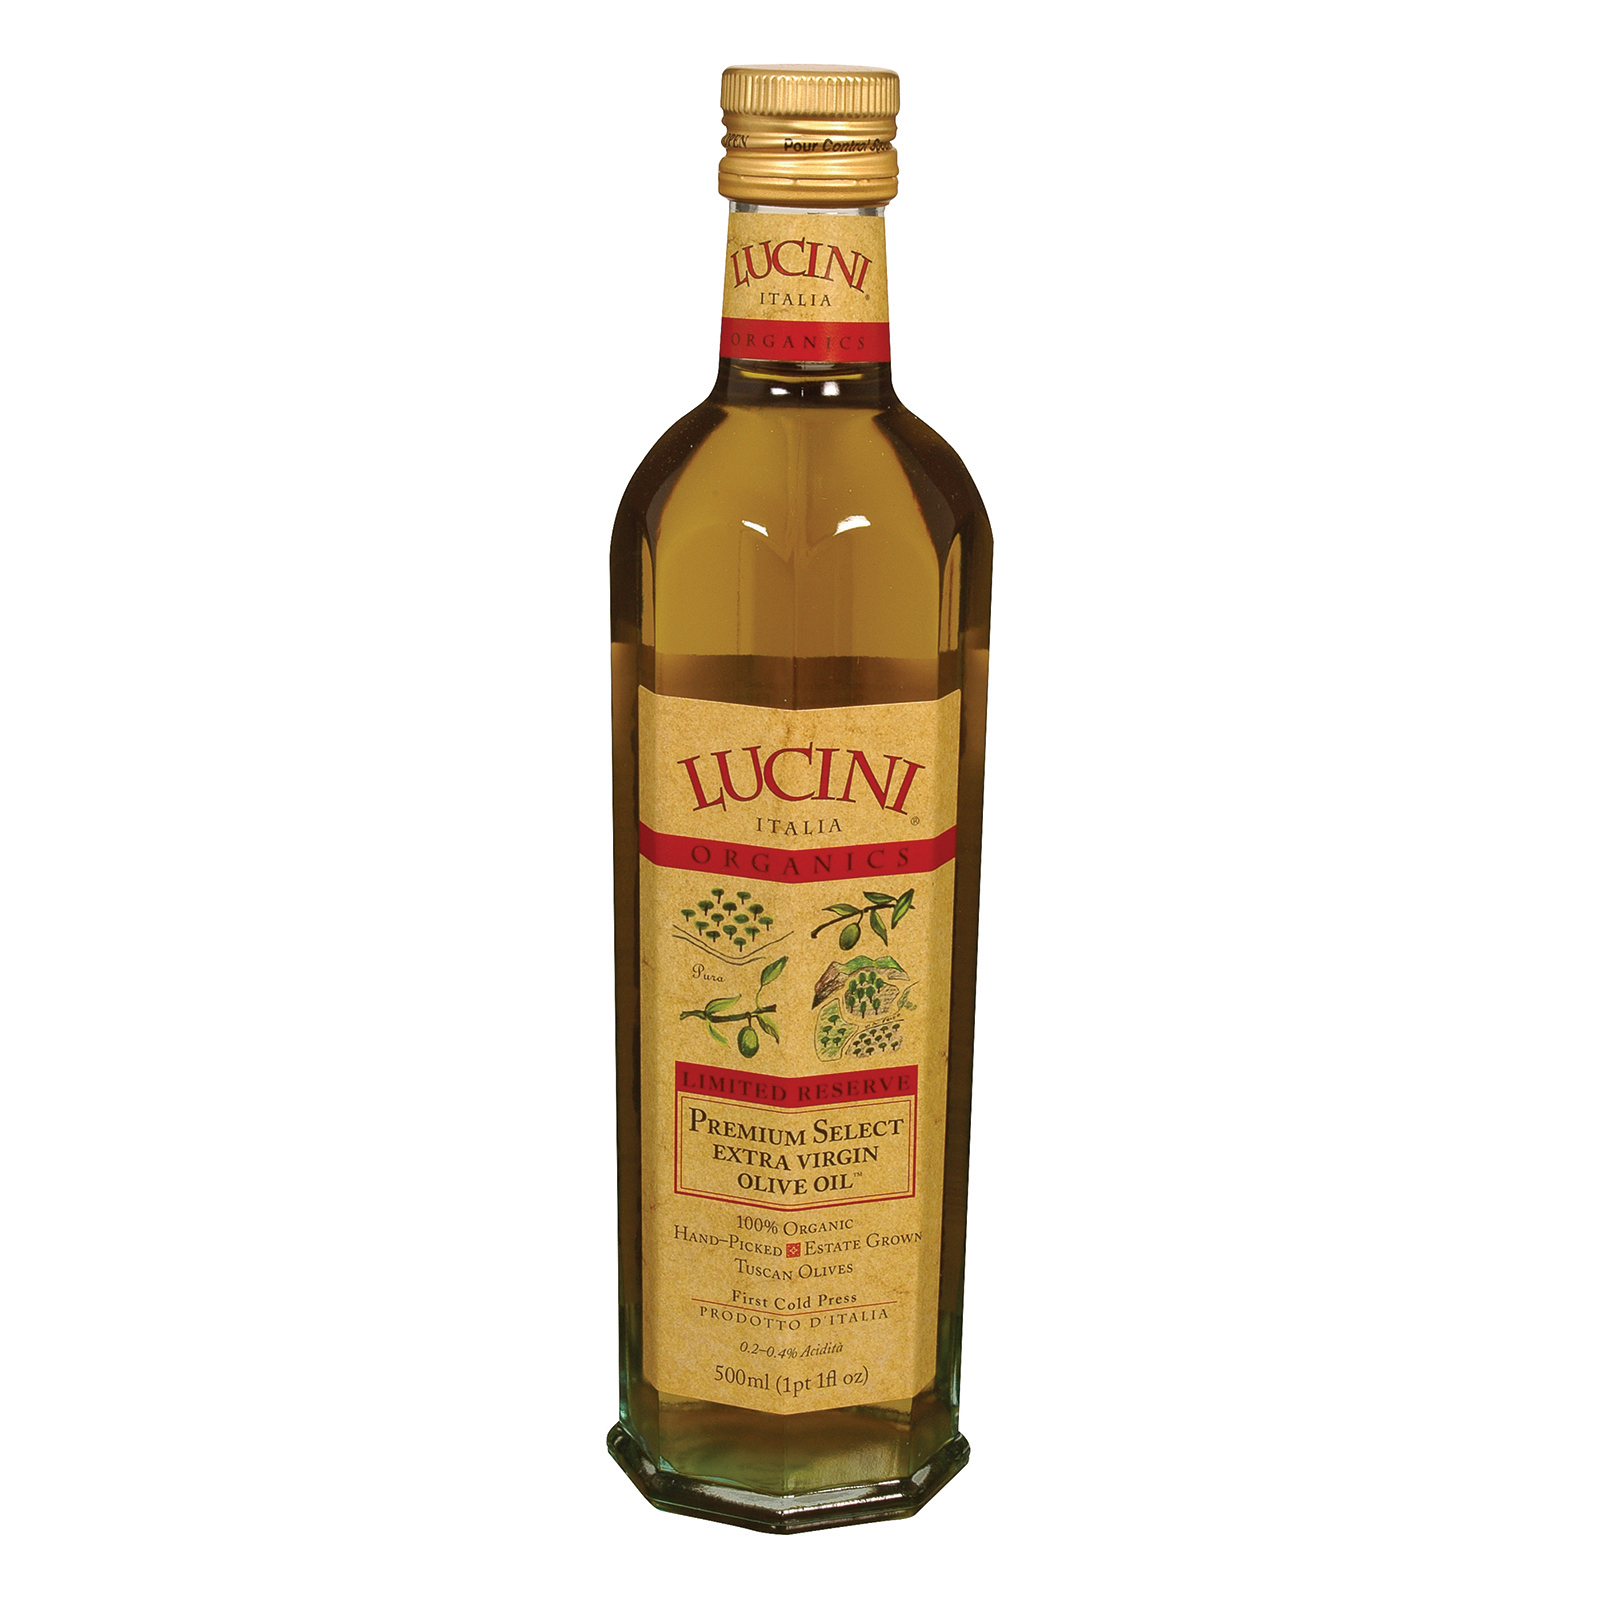 Lucini Italia Organic Extra Virgin Olive Oil - Case Of 6 - 17 Fl Oz.